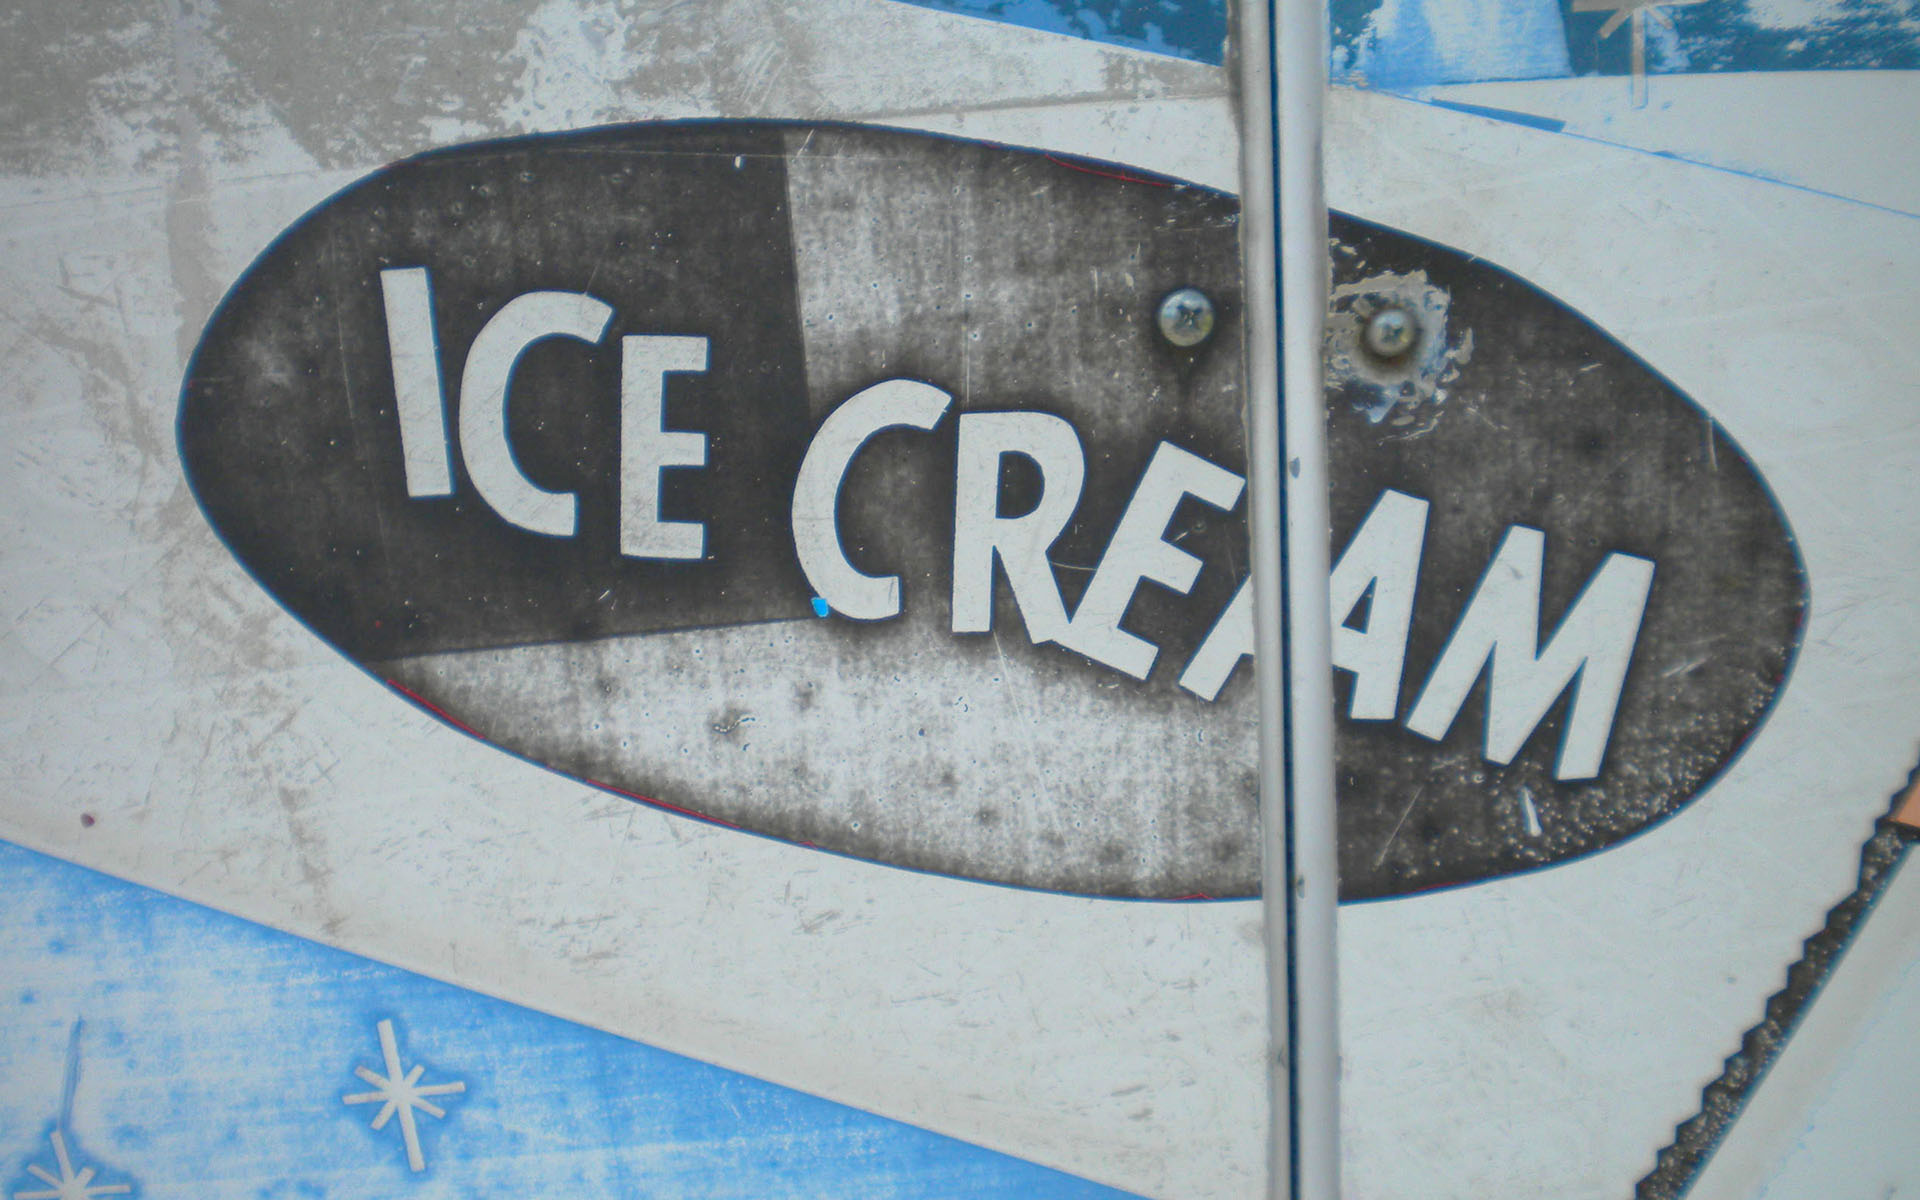 Ice cream for fun truck - New York summer - events - parties - about us